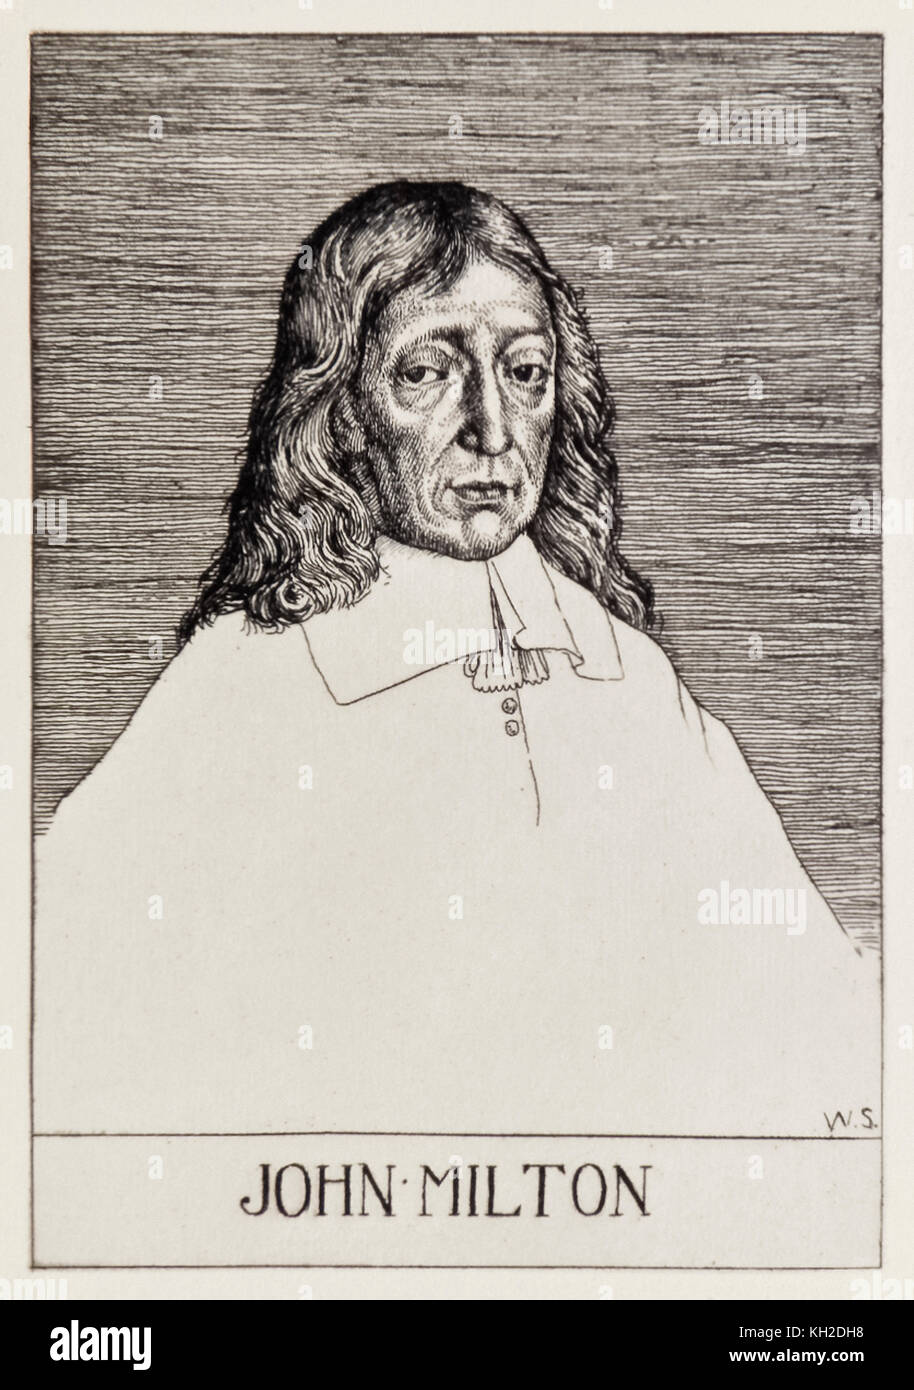 Frontispiece portrait of John Milton (1608-1674) from 'Paradise Lost' by a series of 12 illustrations etched by - Stock Image